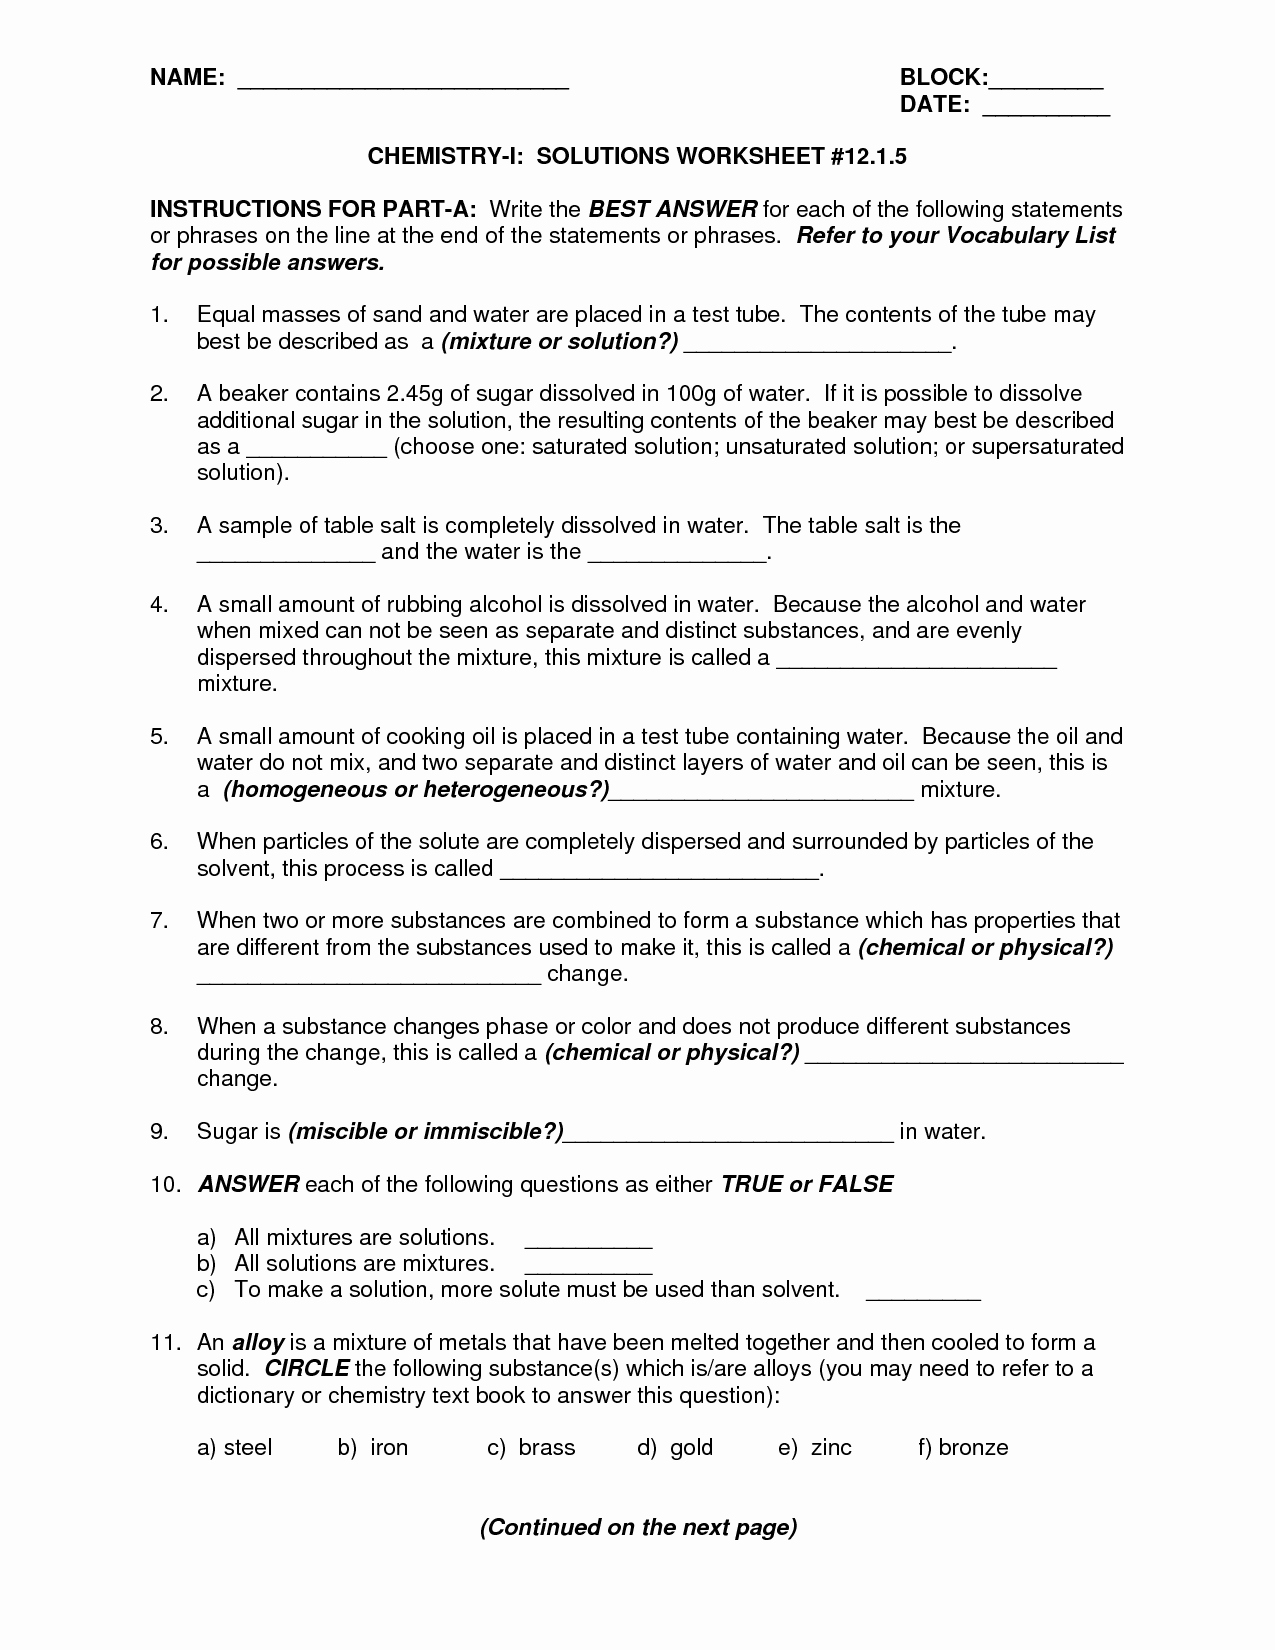 Cell Membrane Coloring Worksheet Answers Inspirational 14 Best Of Cell organelle Riddles Worksheet Answers